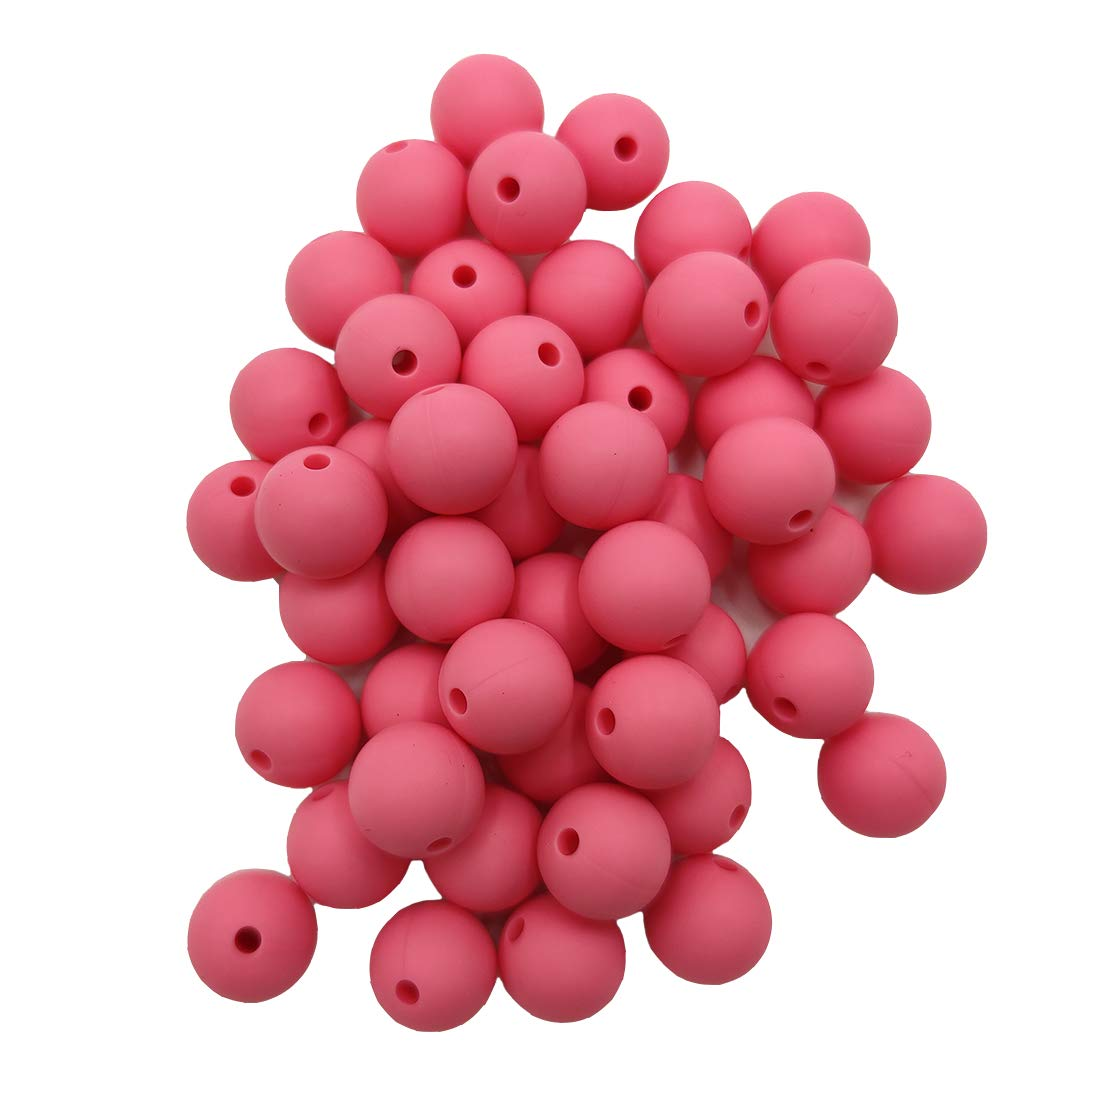 50pcs Baby Pink Color Silicone Round Beads Sensory 15mm Silicone Pearl Bead Bulk Mom Necklace DIY Jewelry Making Decoration